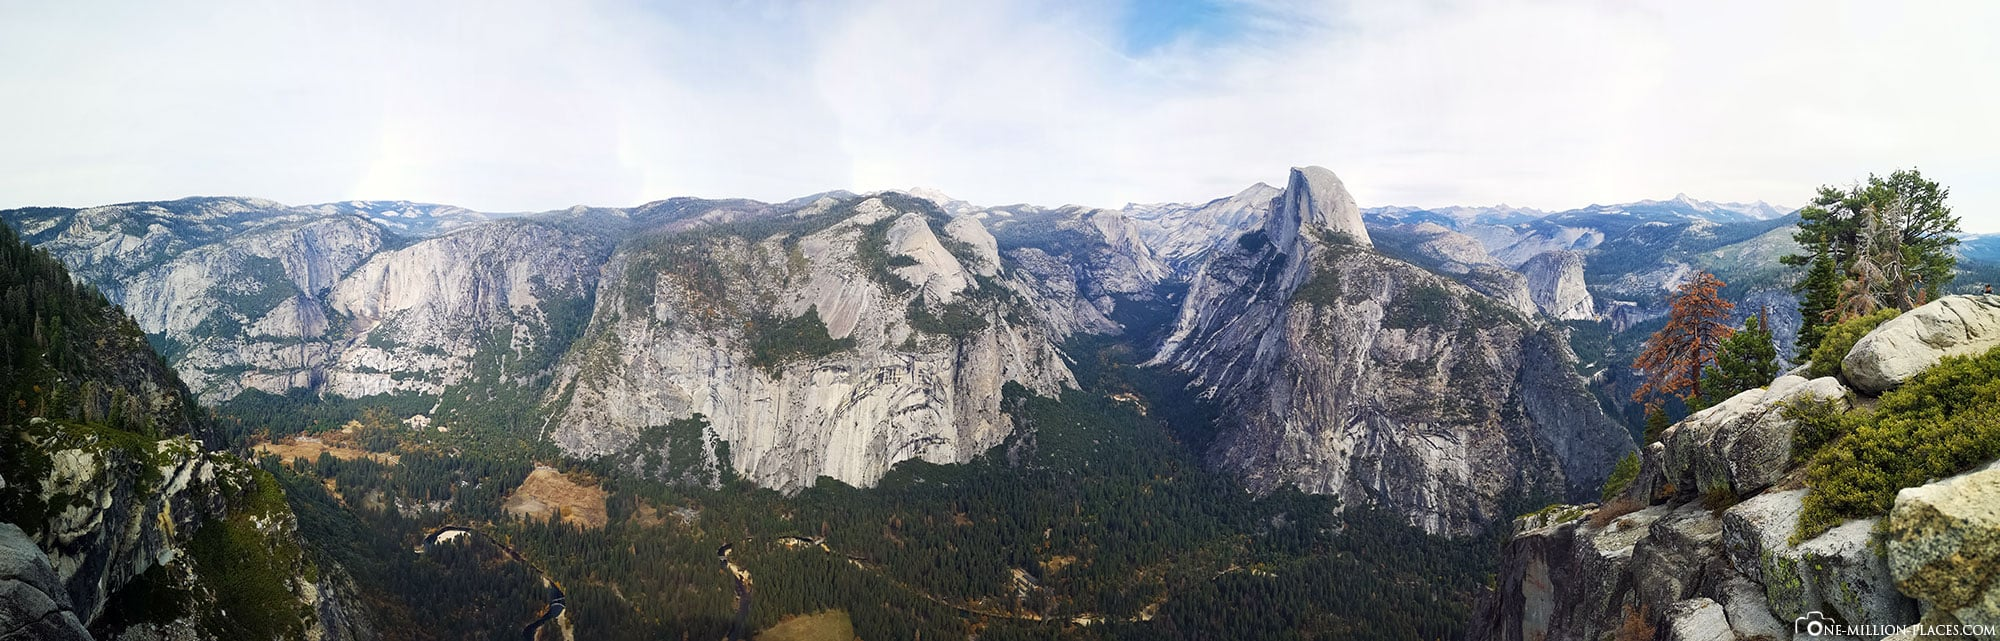 Panoramic view, Glacier Point, Yosemite Valley, Yosemite National Park, Attractions, California, USA, Travel report